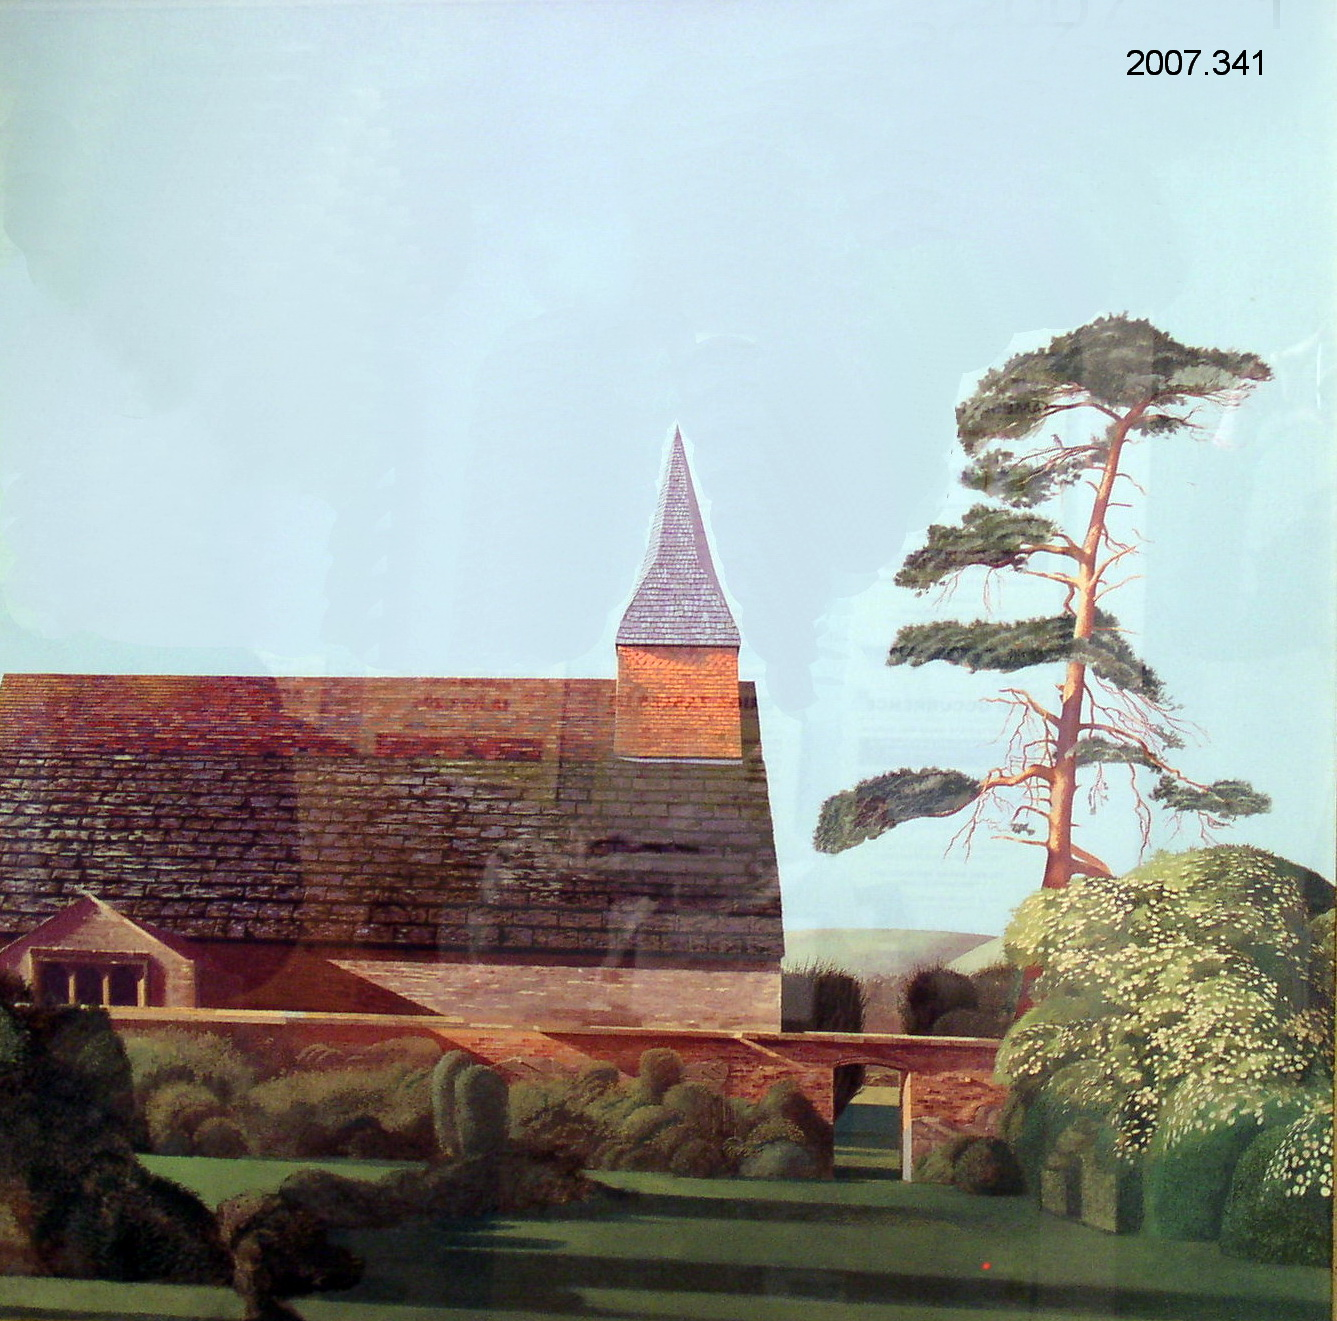 'The Church at Warminghurst' in Sussex